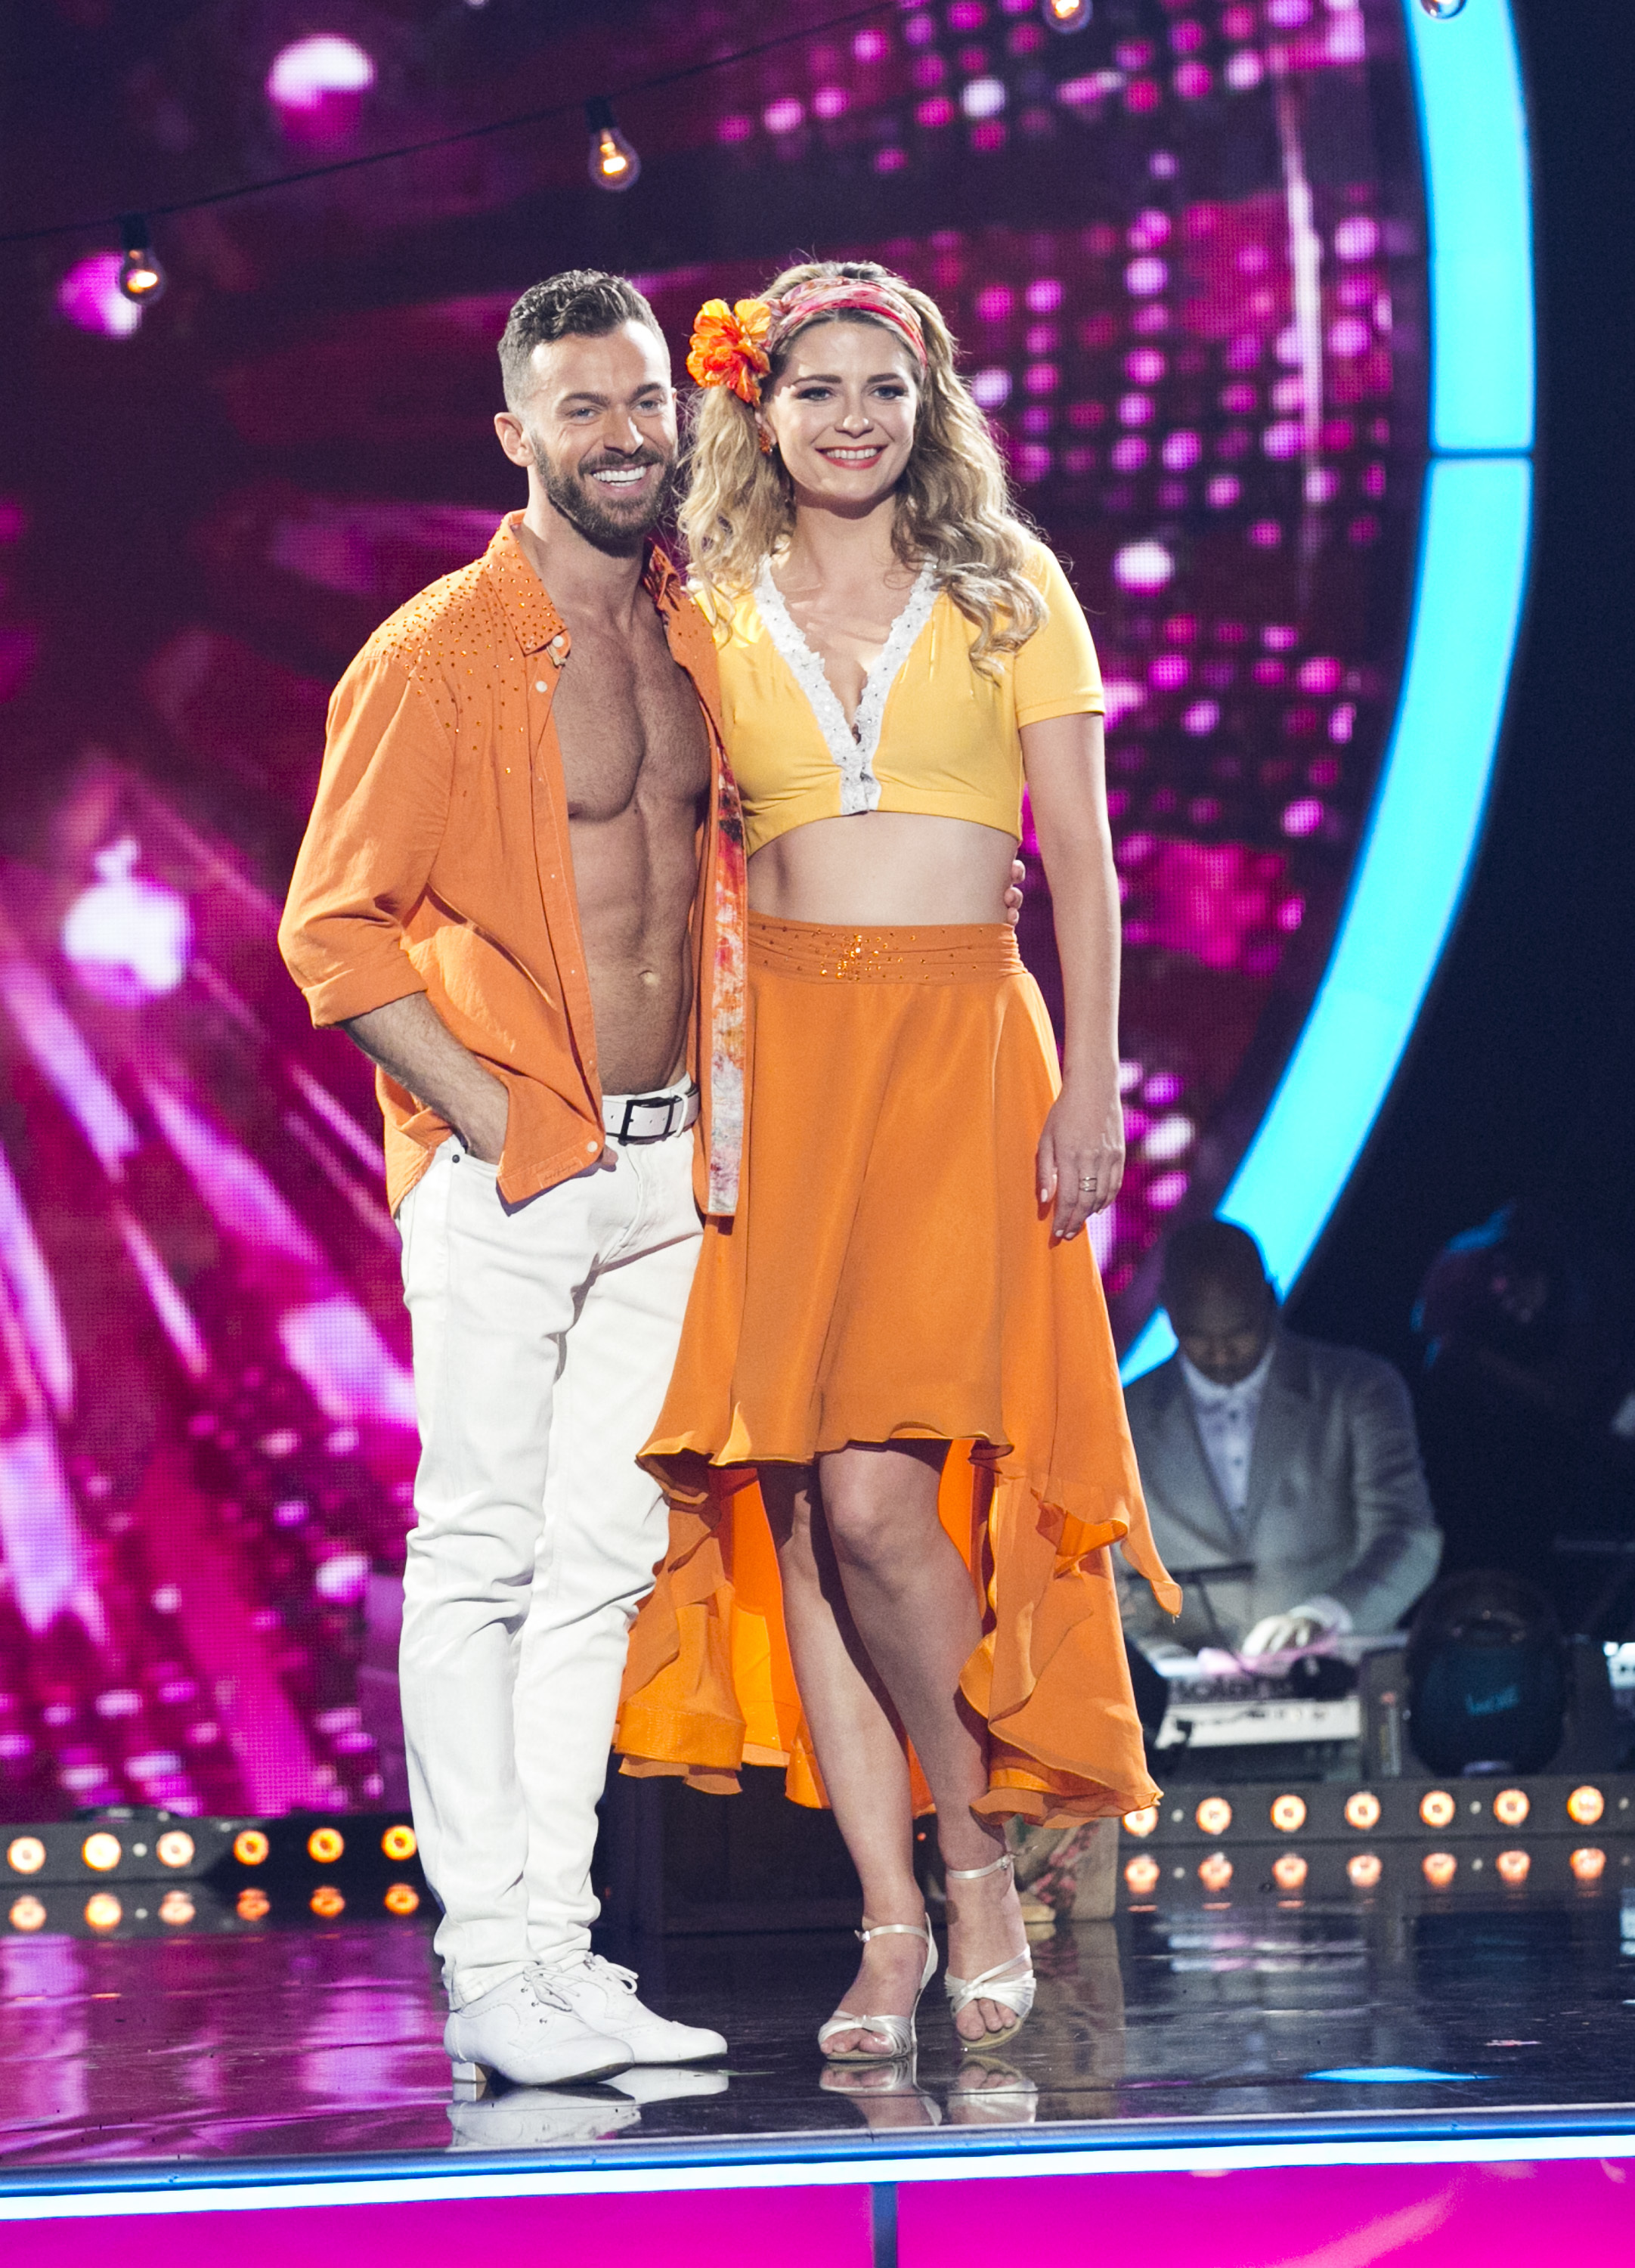 """Mischa Barton poses with her partner Artem Chigvintsev after a performance on """"Dancing With the Stars"""": Season 22 in Los Angeles on March 28, 2016."""